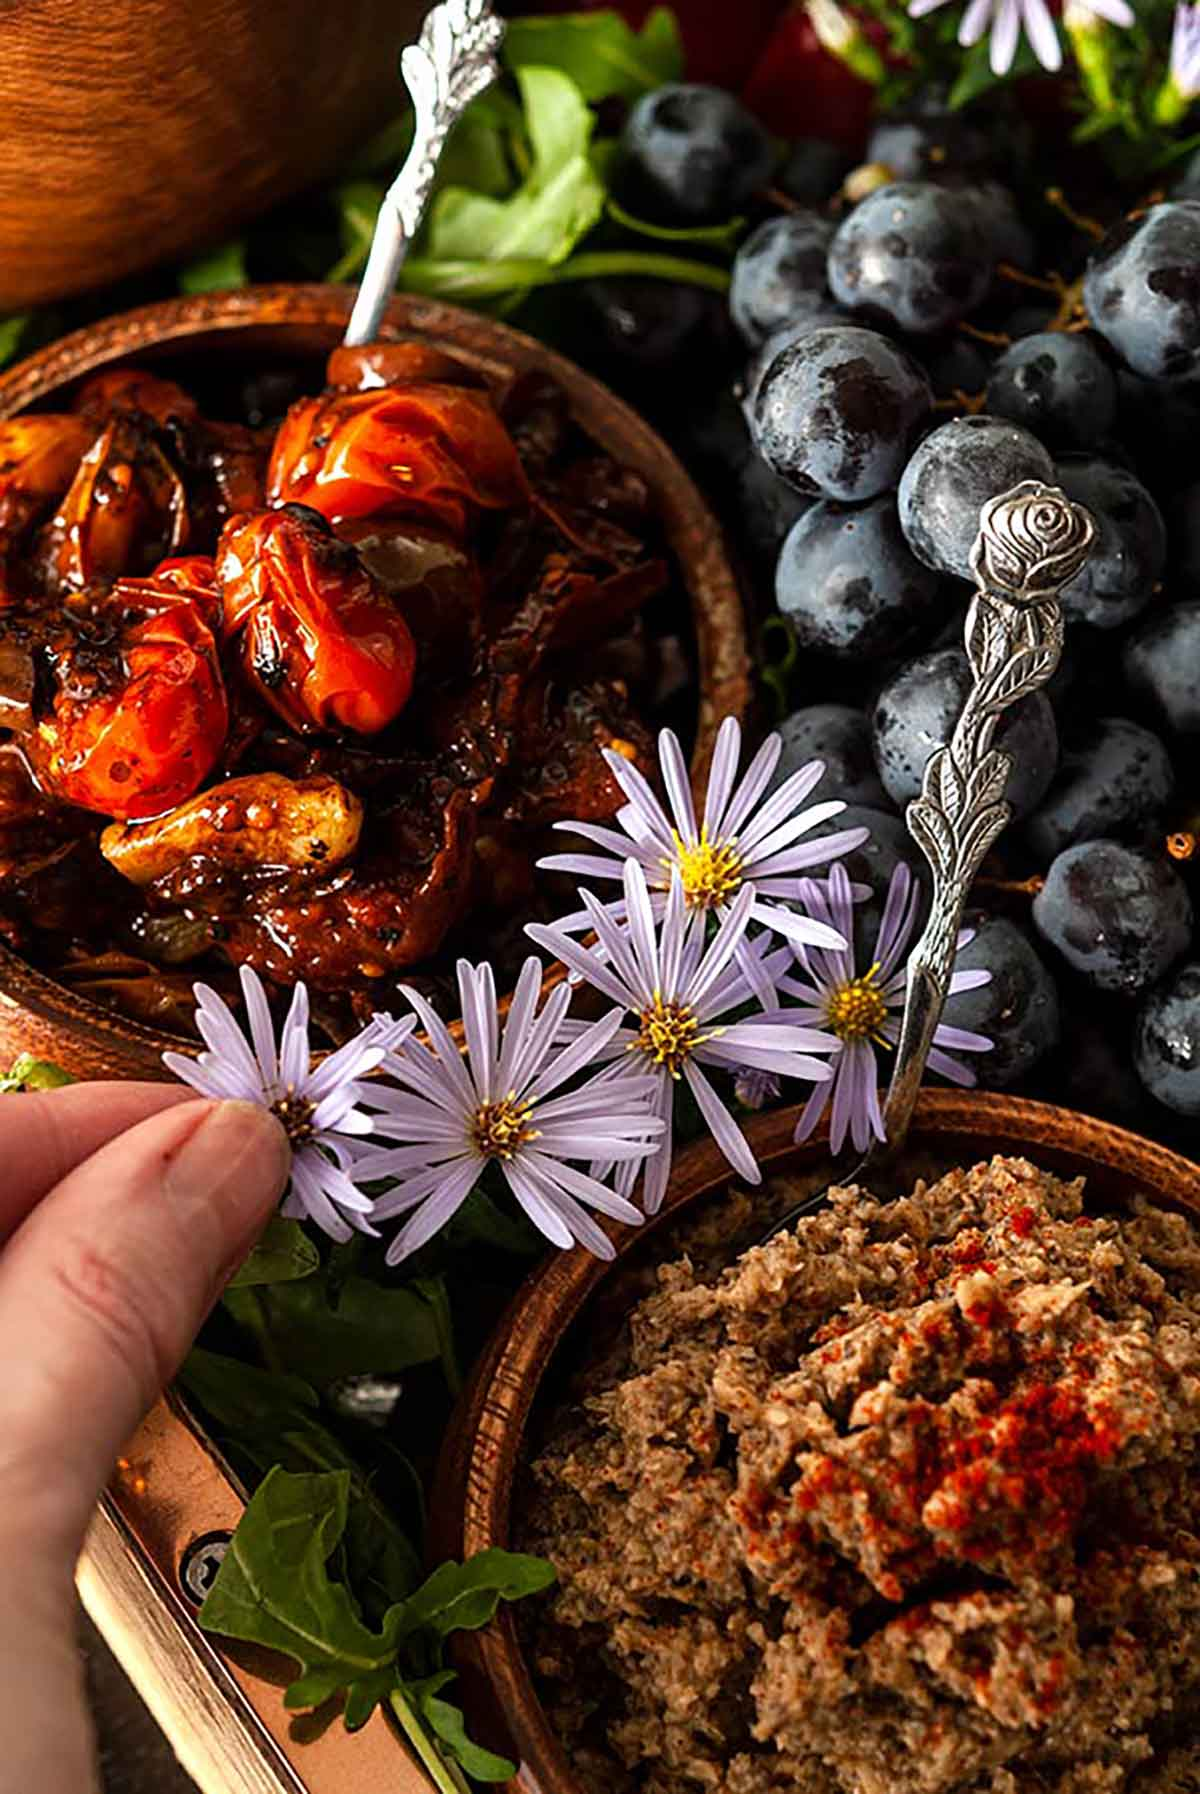 Fingers adding flowers between bowls of dips, surrounded by grapes and arugula in a tray.